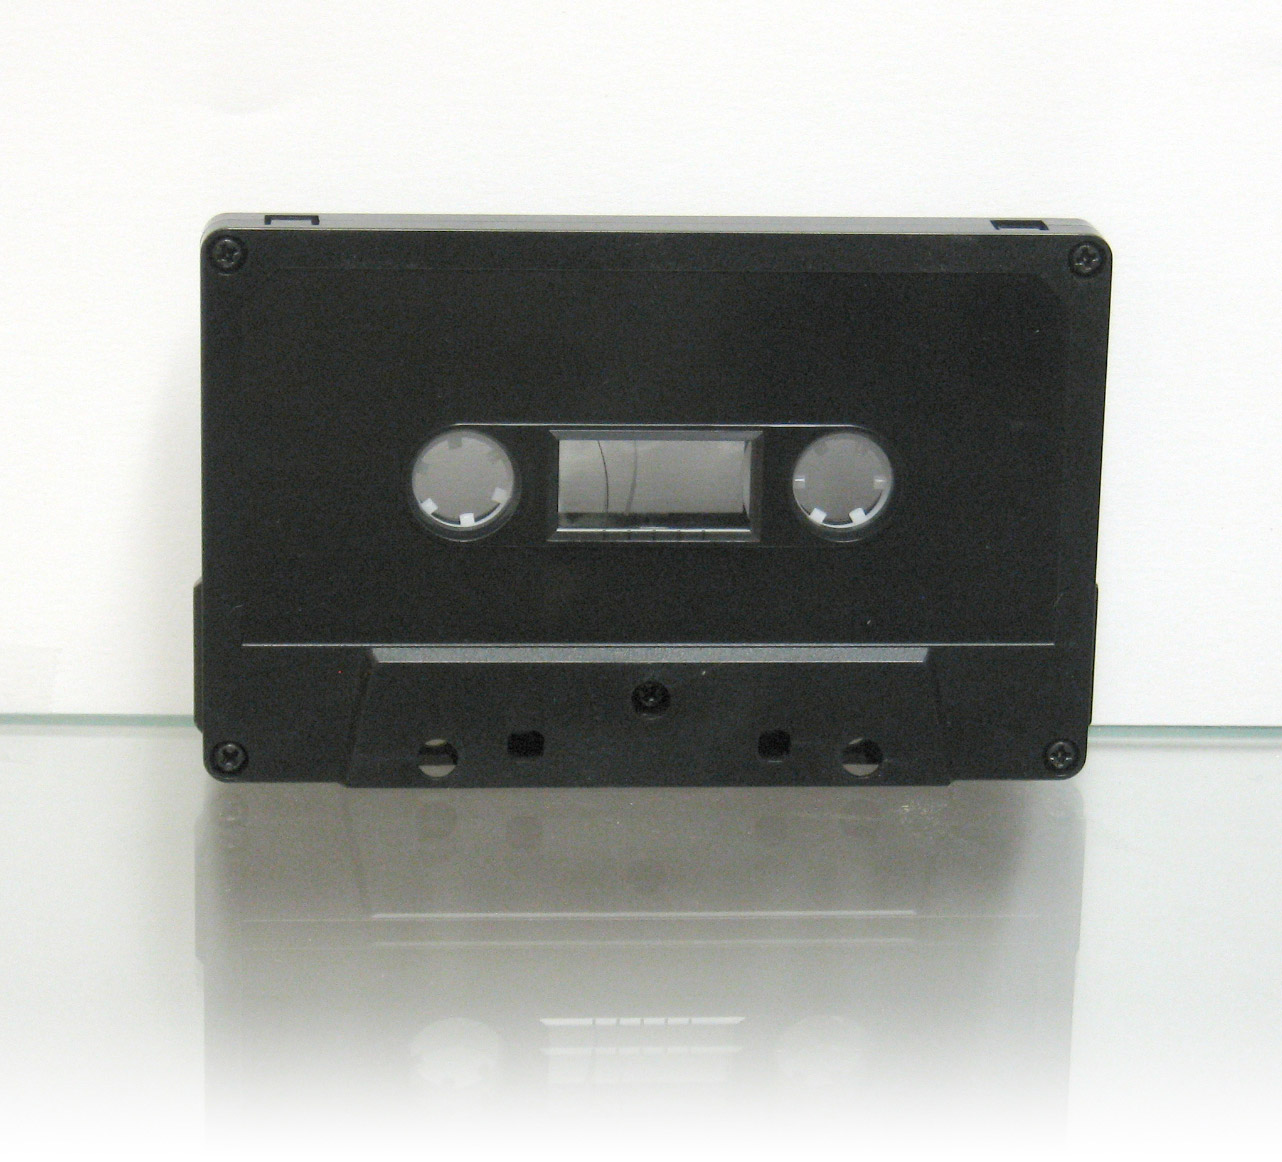 Audio Cassette High Resolution Huge Images